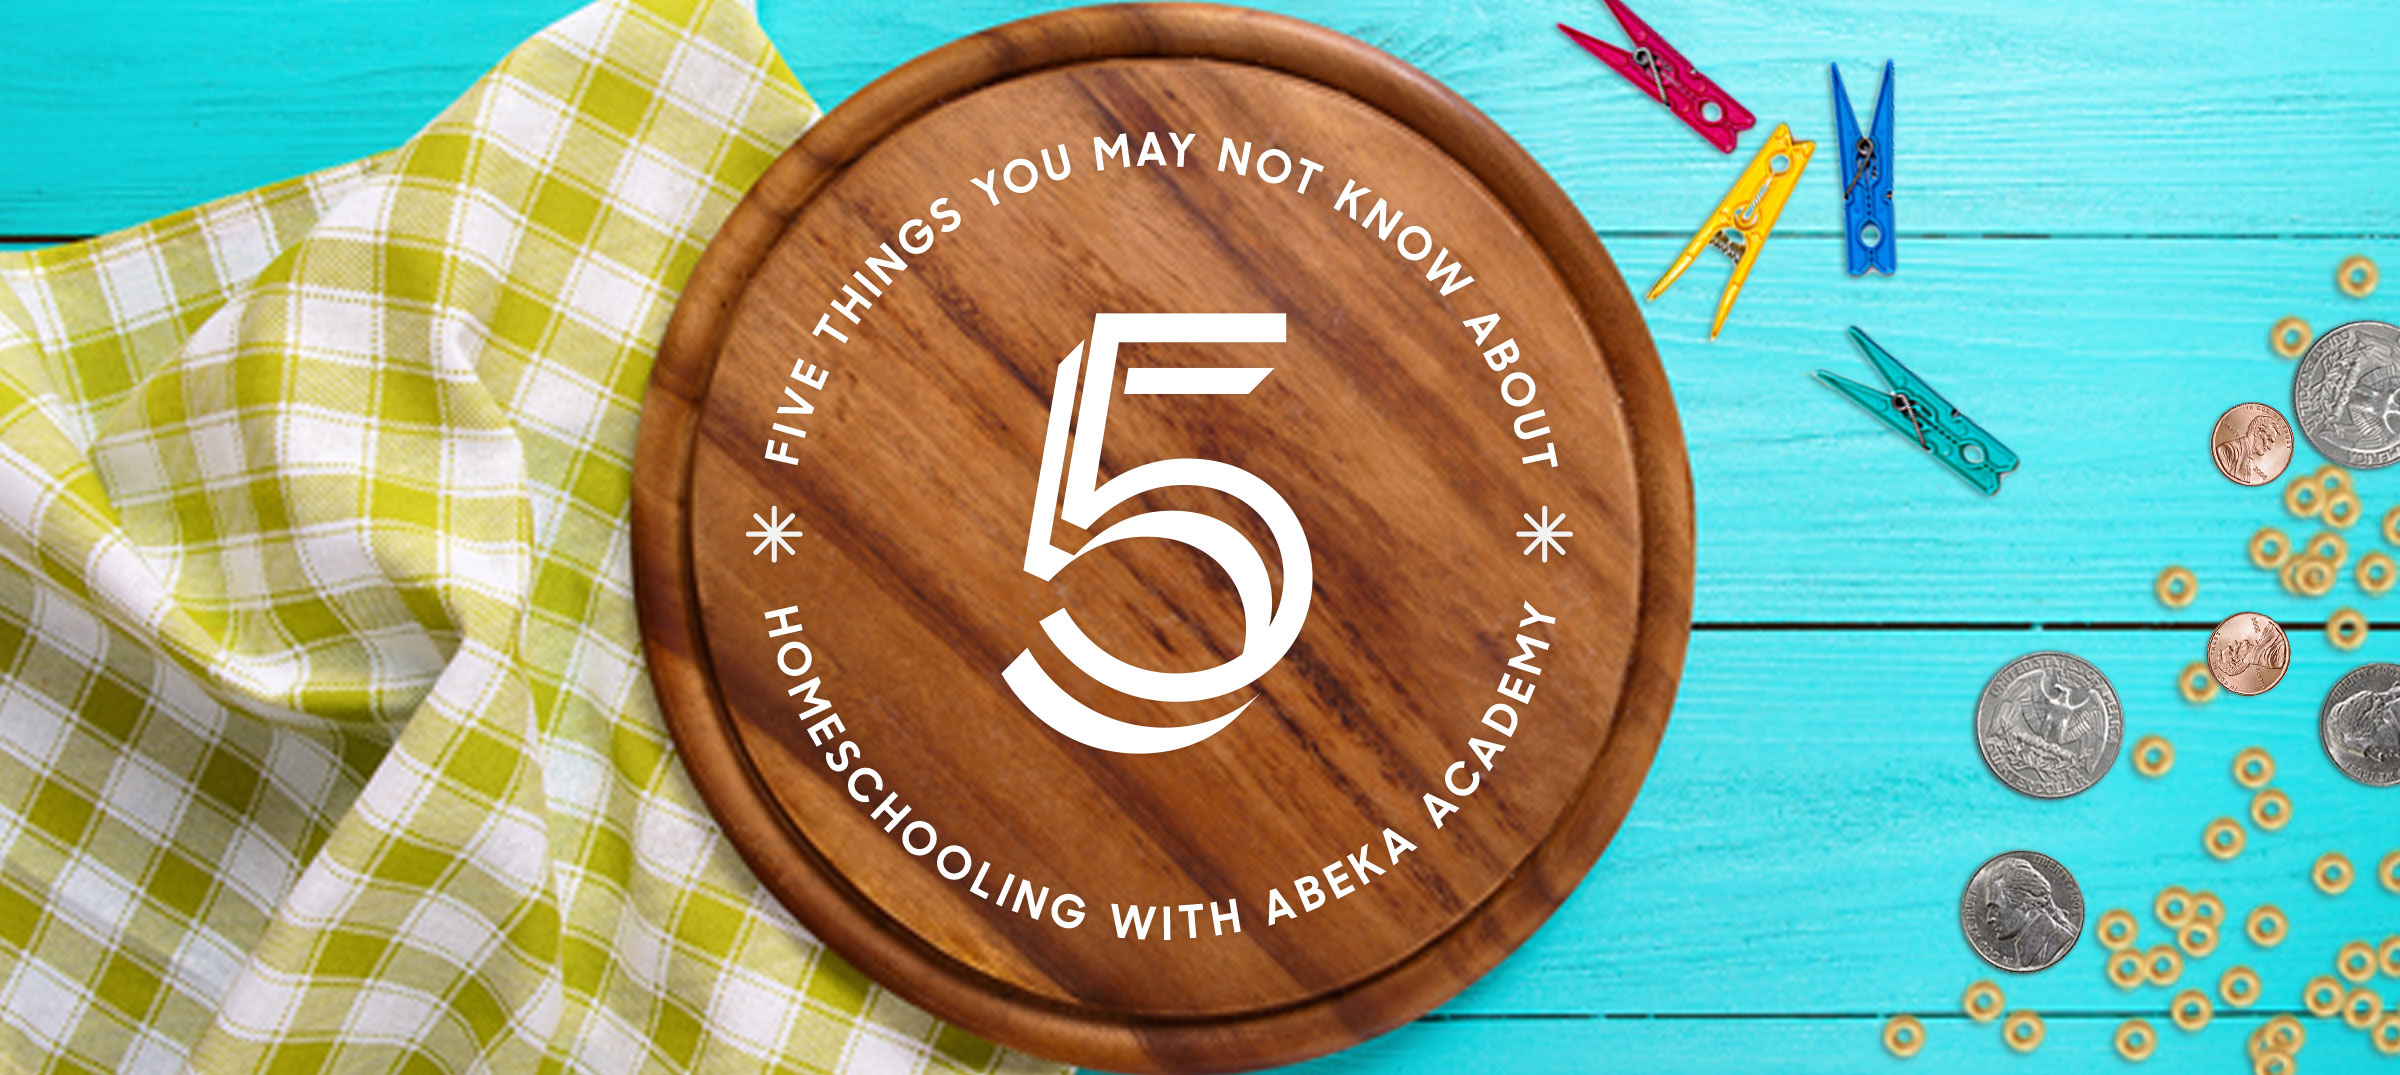 5 Things You May Not Know About Homeschooling with Abeka